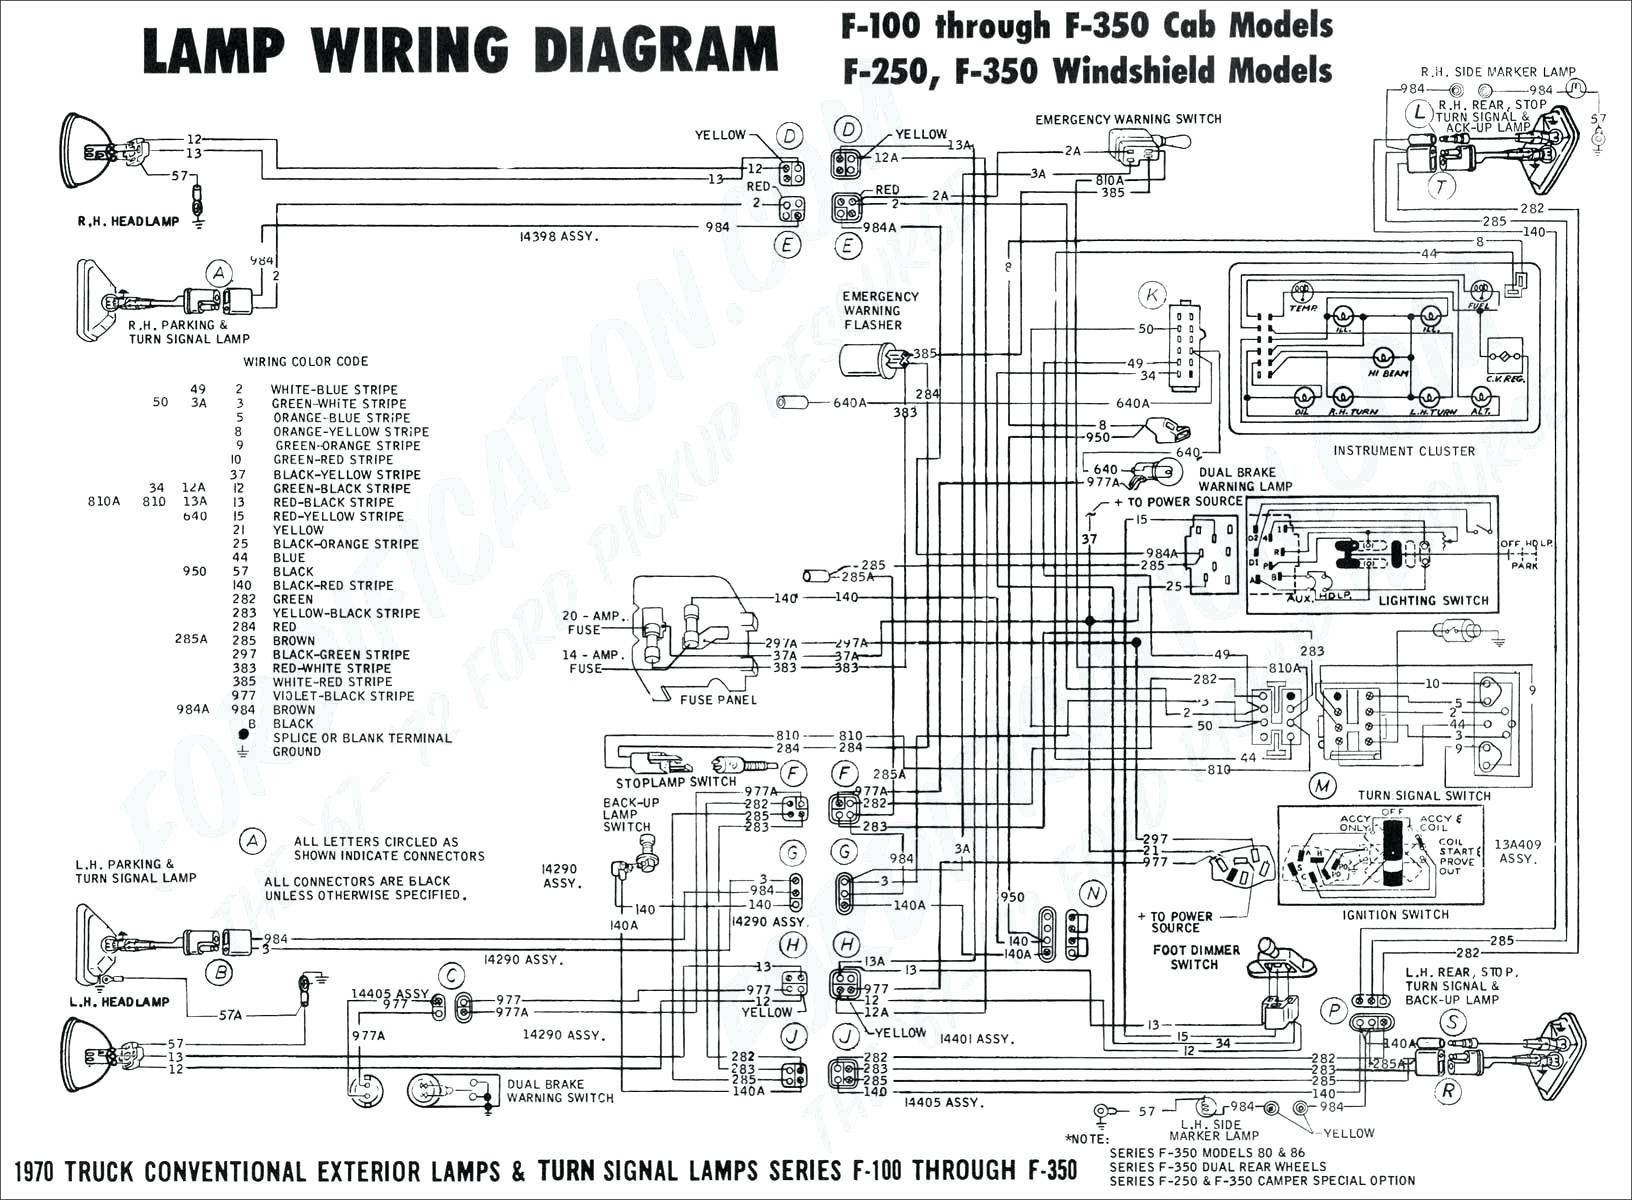 Vacuum Hose Routing Diagram 1986 ford F150 Diagram] ford F 150 Truck Wiring Diagram Full Version Hd Of Vacuum Hose Routing Diagram 1986 ford F150